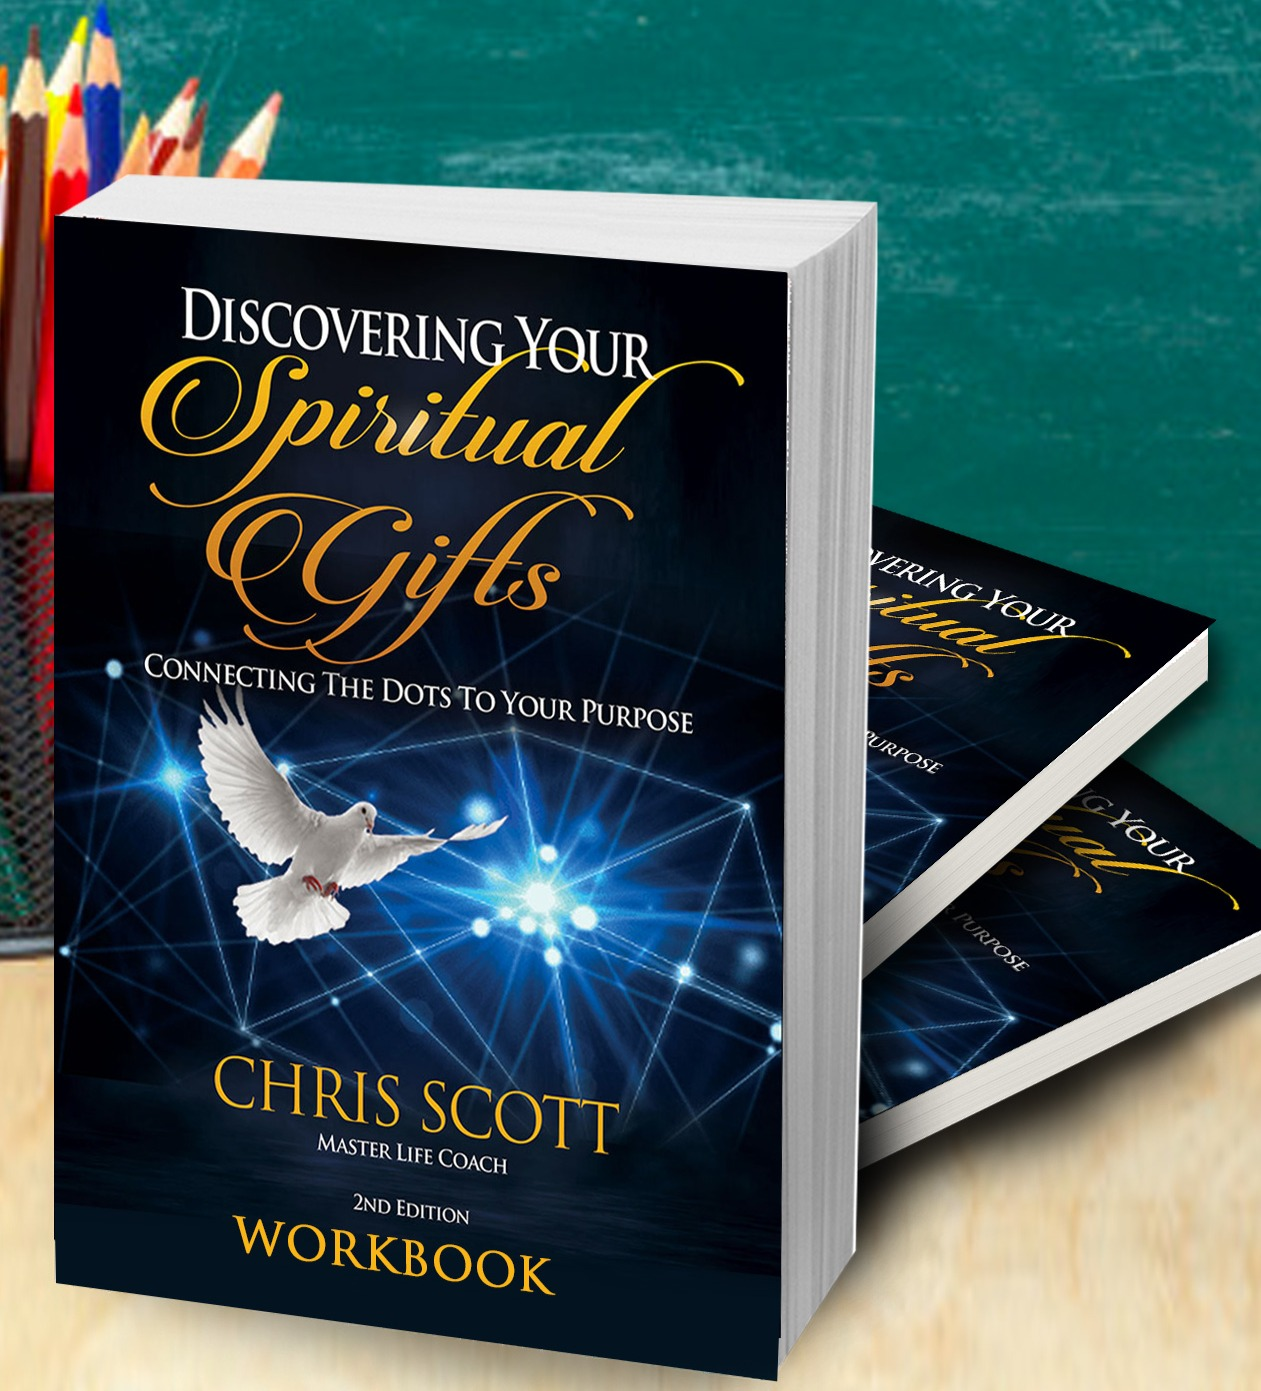 My Spiritual Gifts_Workbook